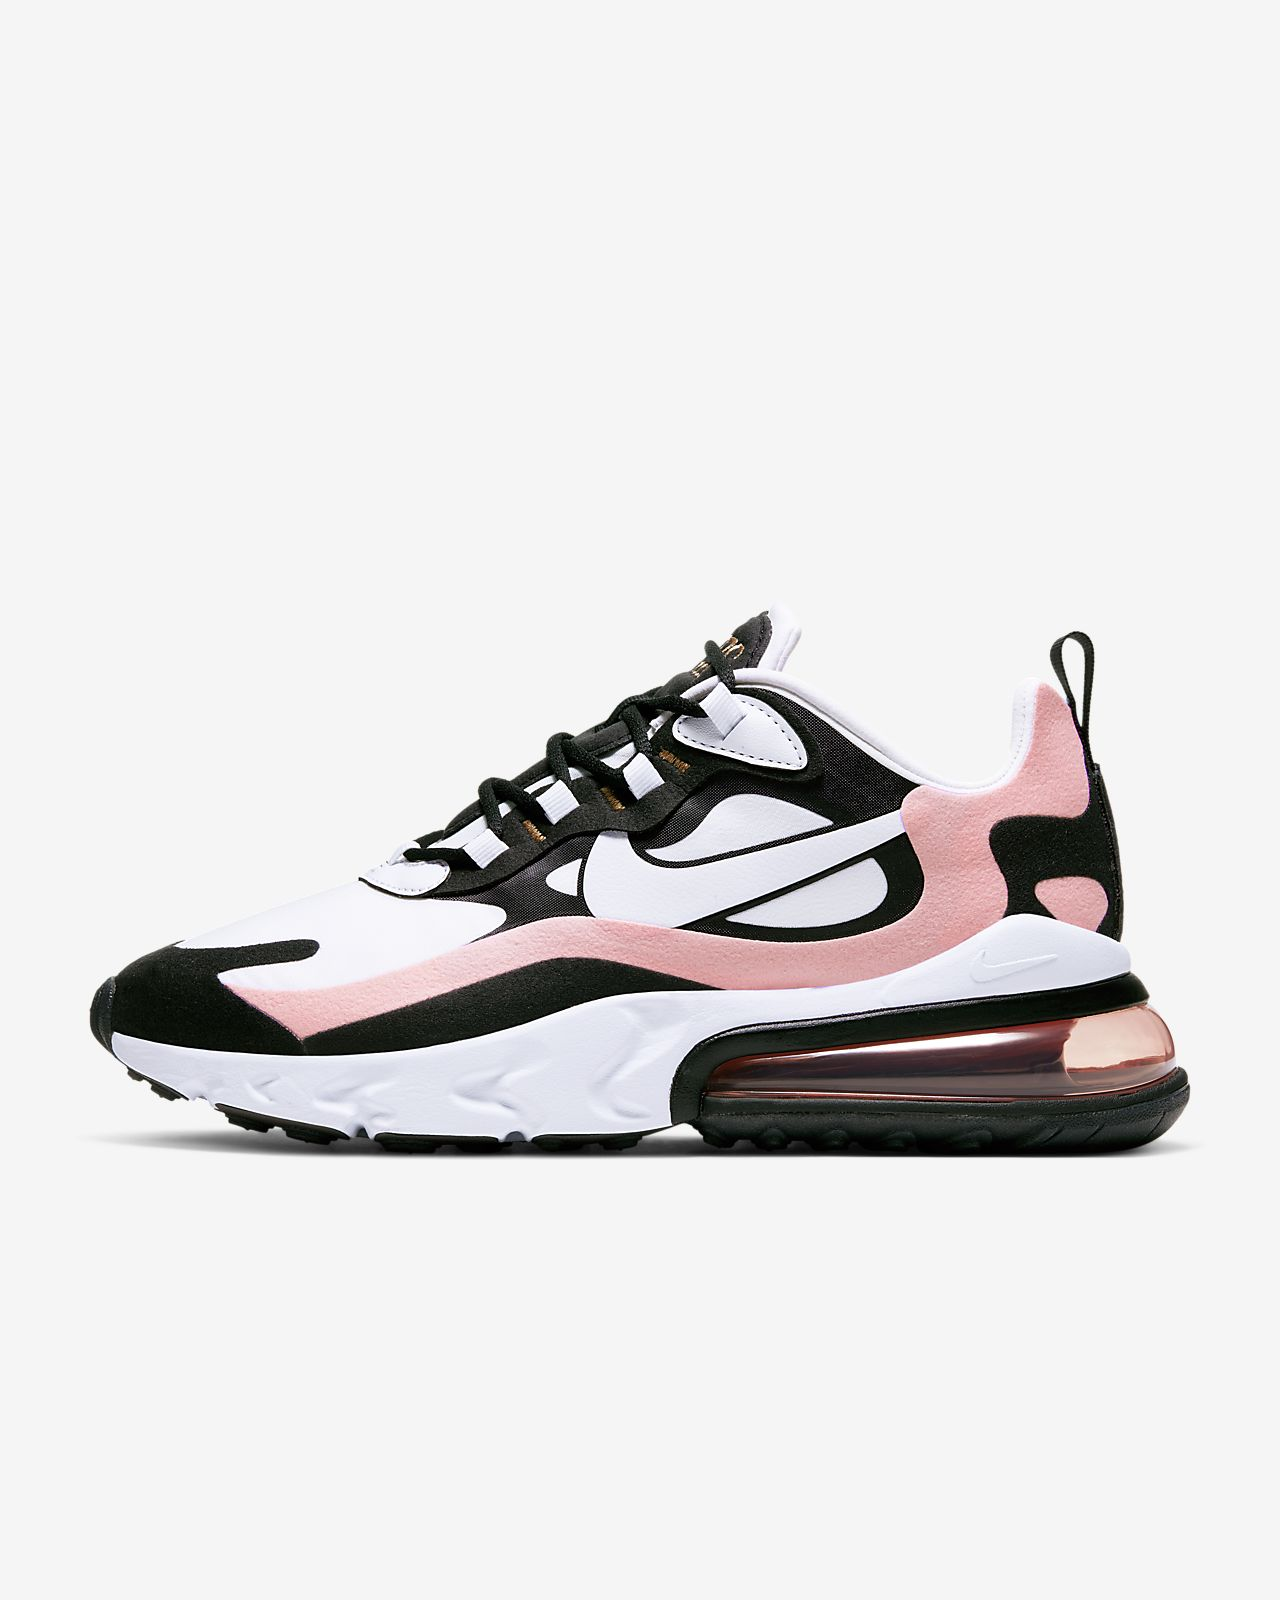 available popular stores check out Nike Air Max 270 React Women's Shoe